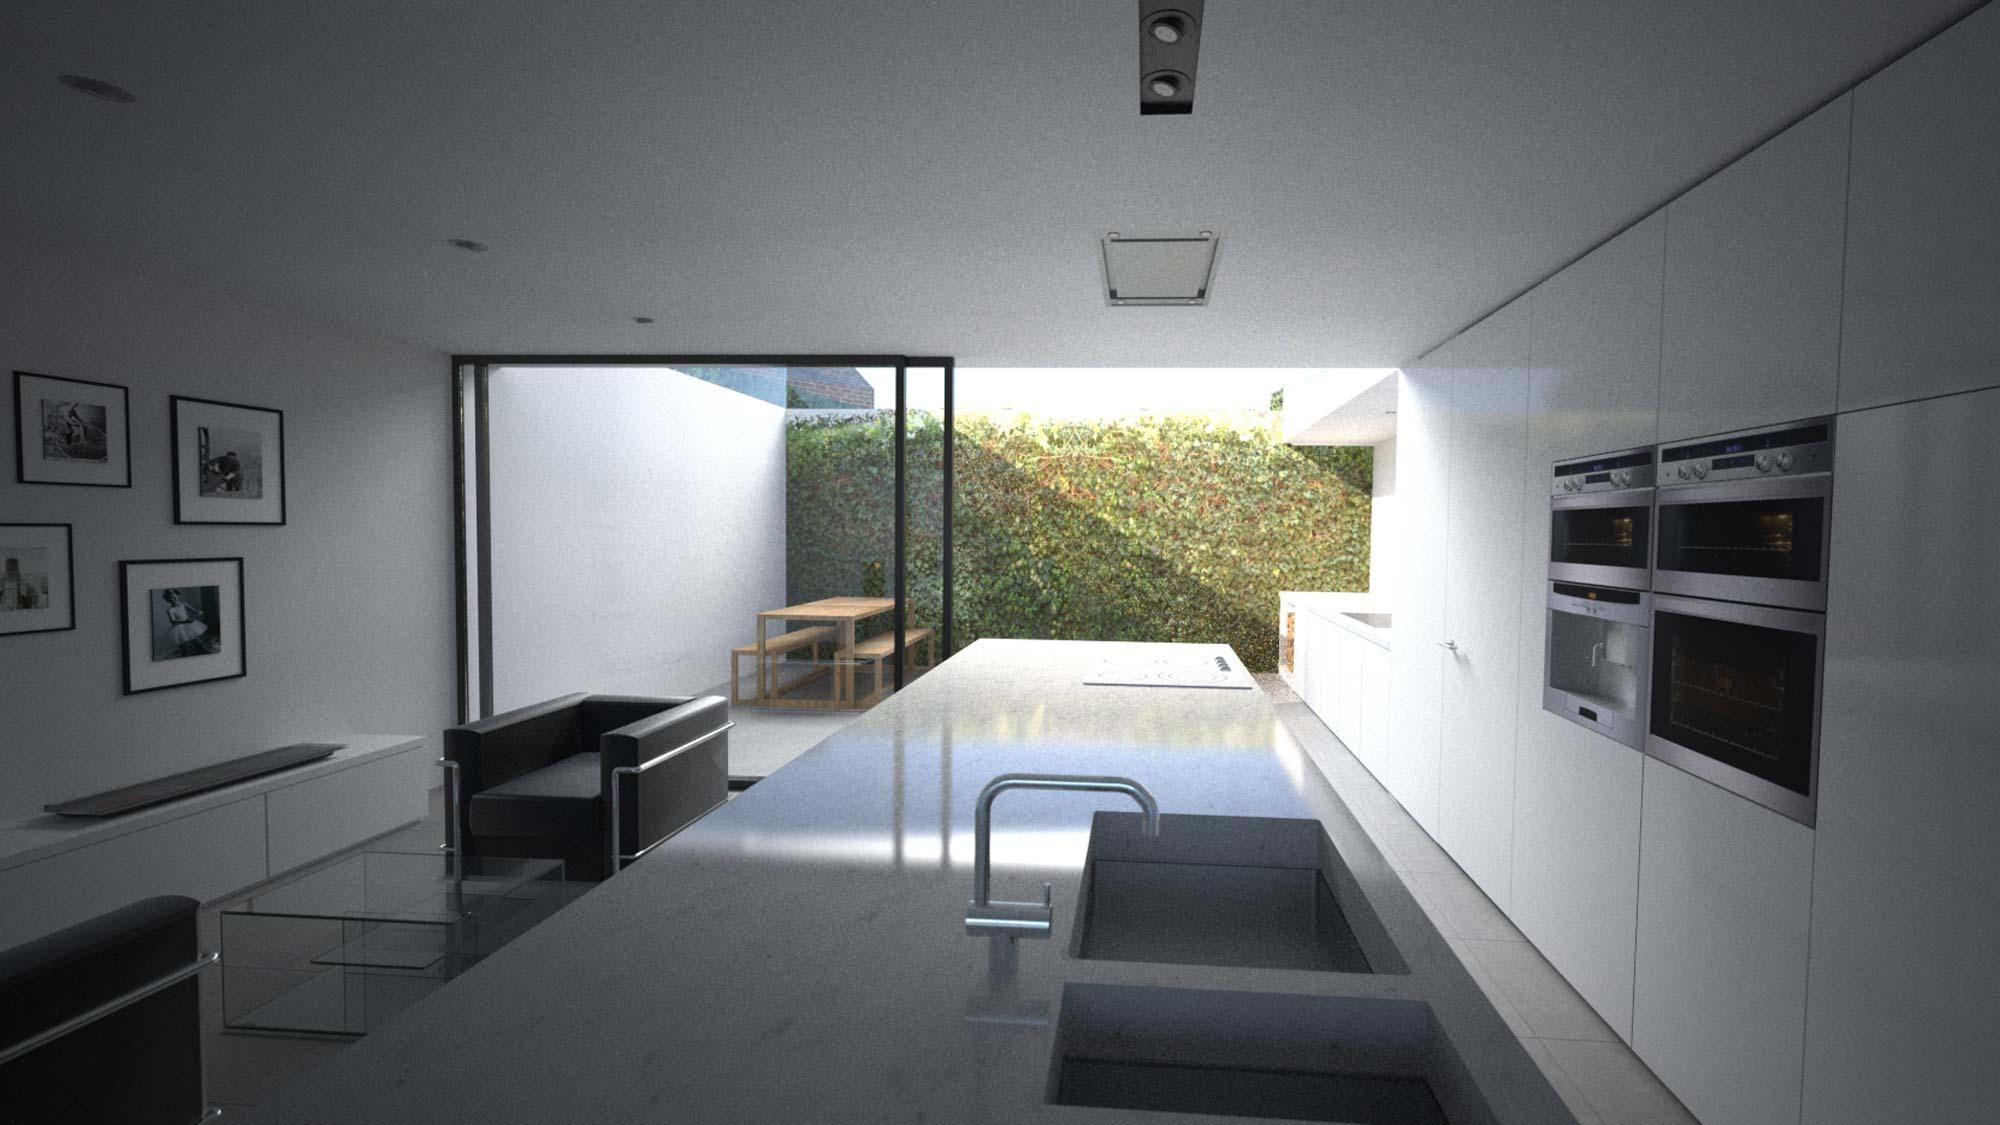 Private Residential In Manchester Uk Designed By Andrew Wallace